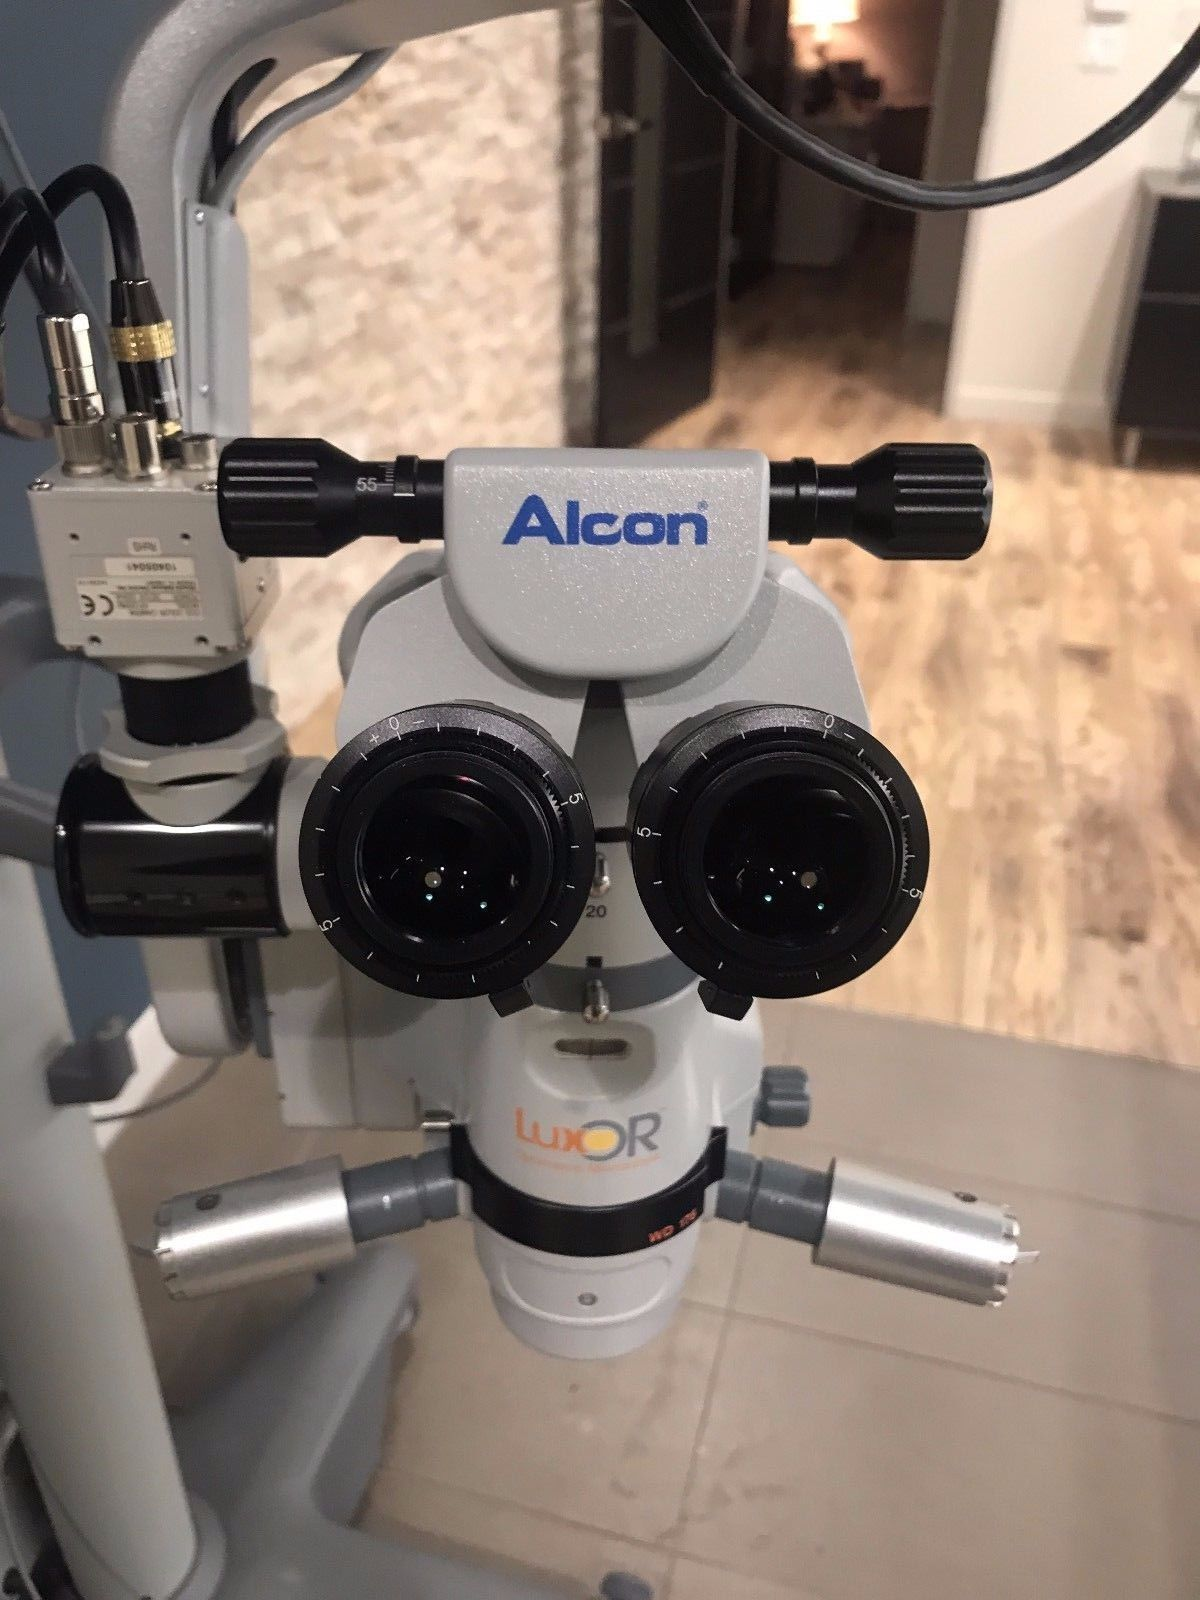 2014 Alcon Luxor Surgical Ophtahlmic Microscope